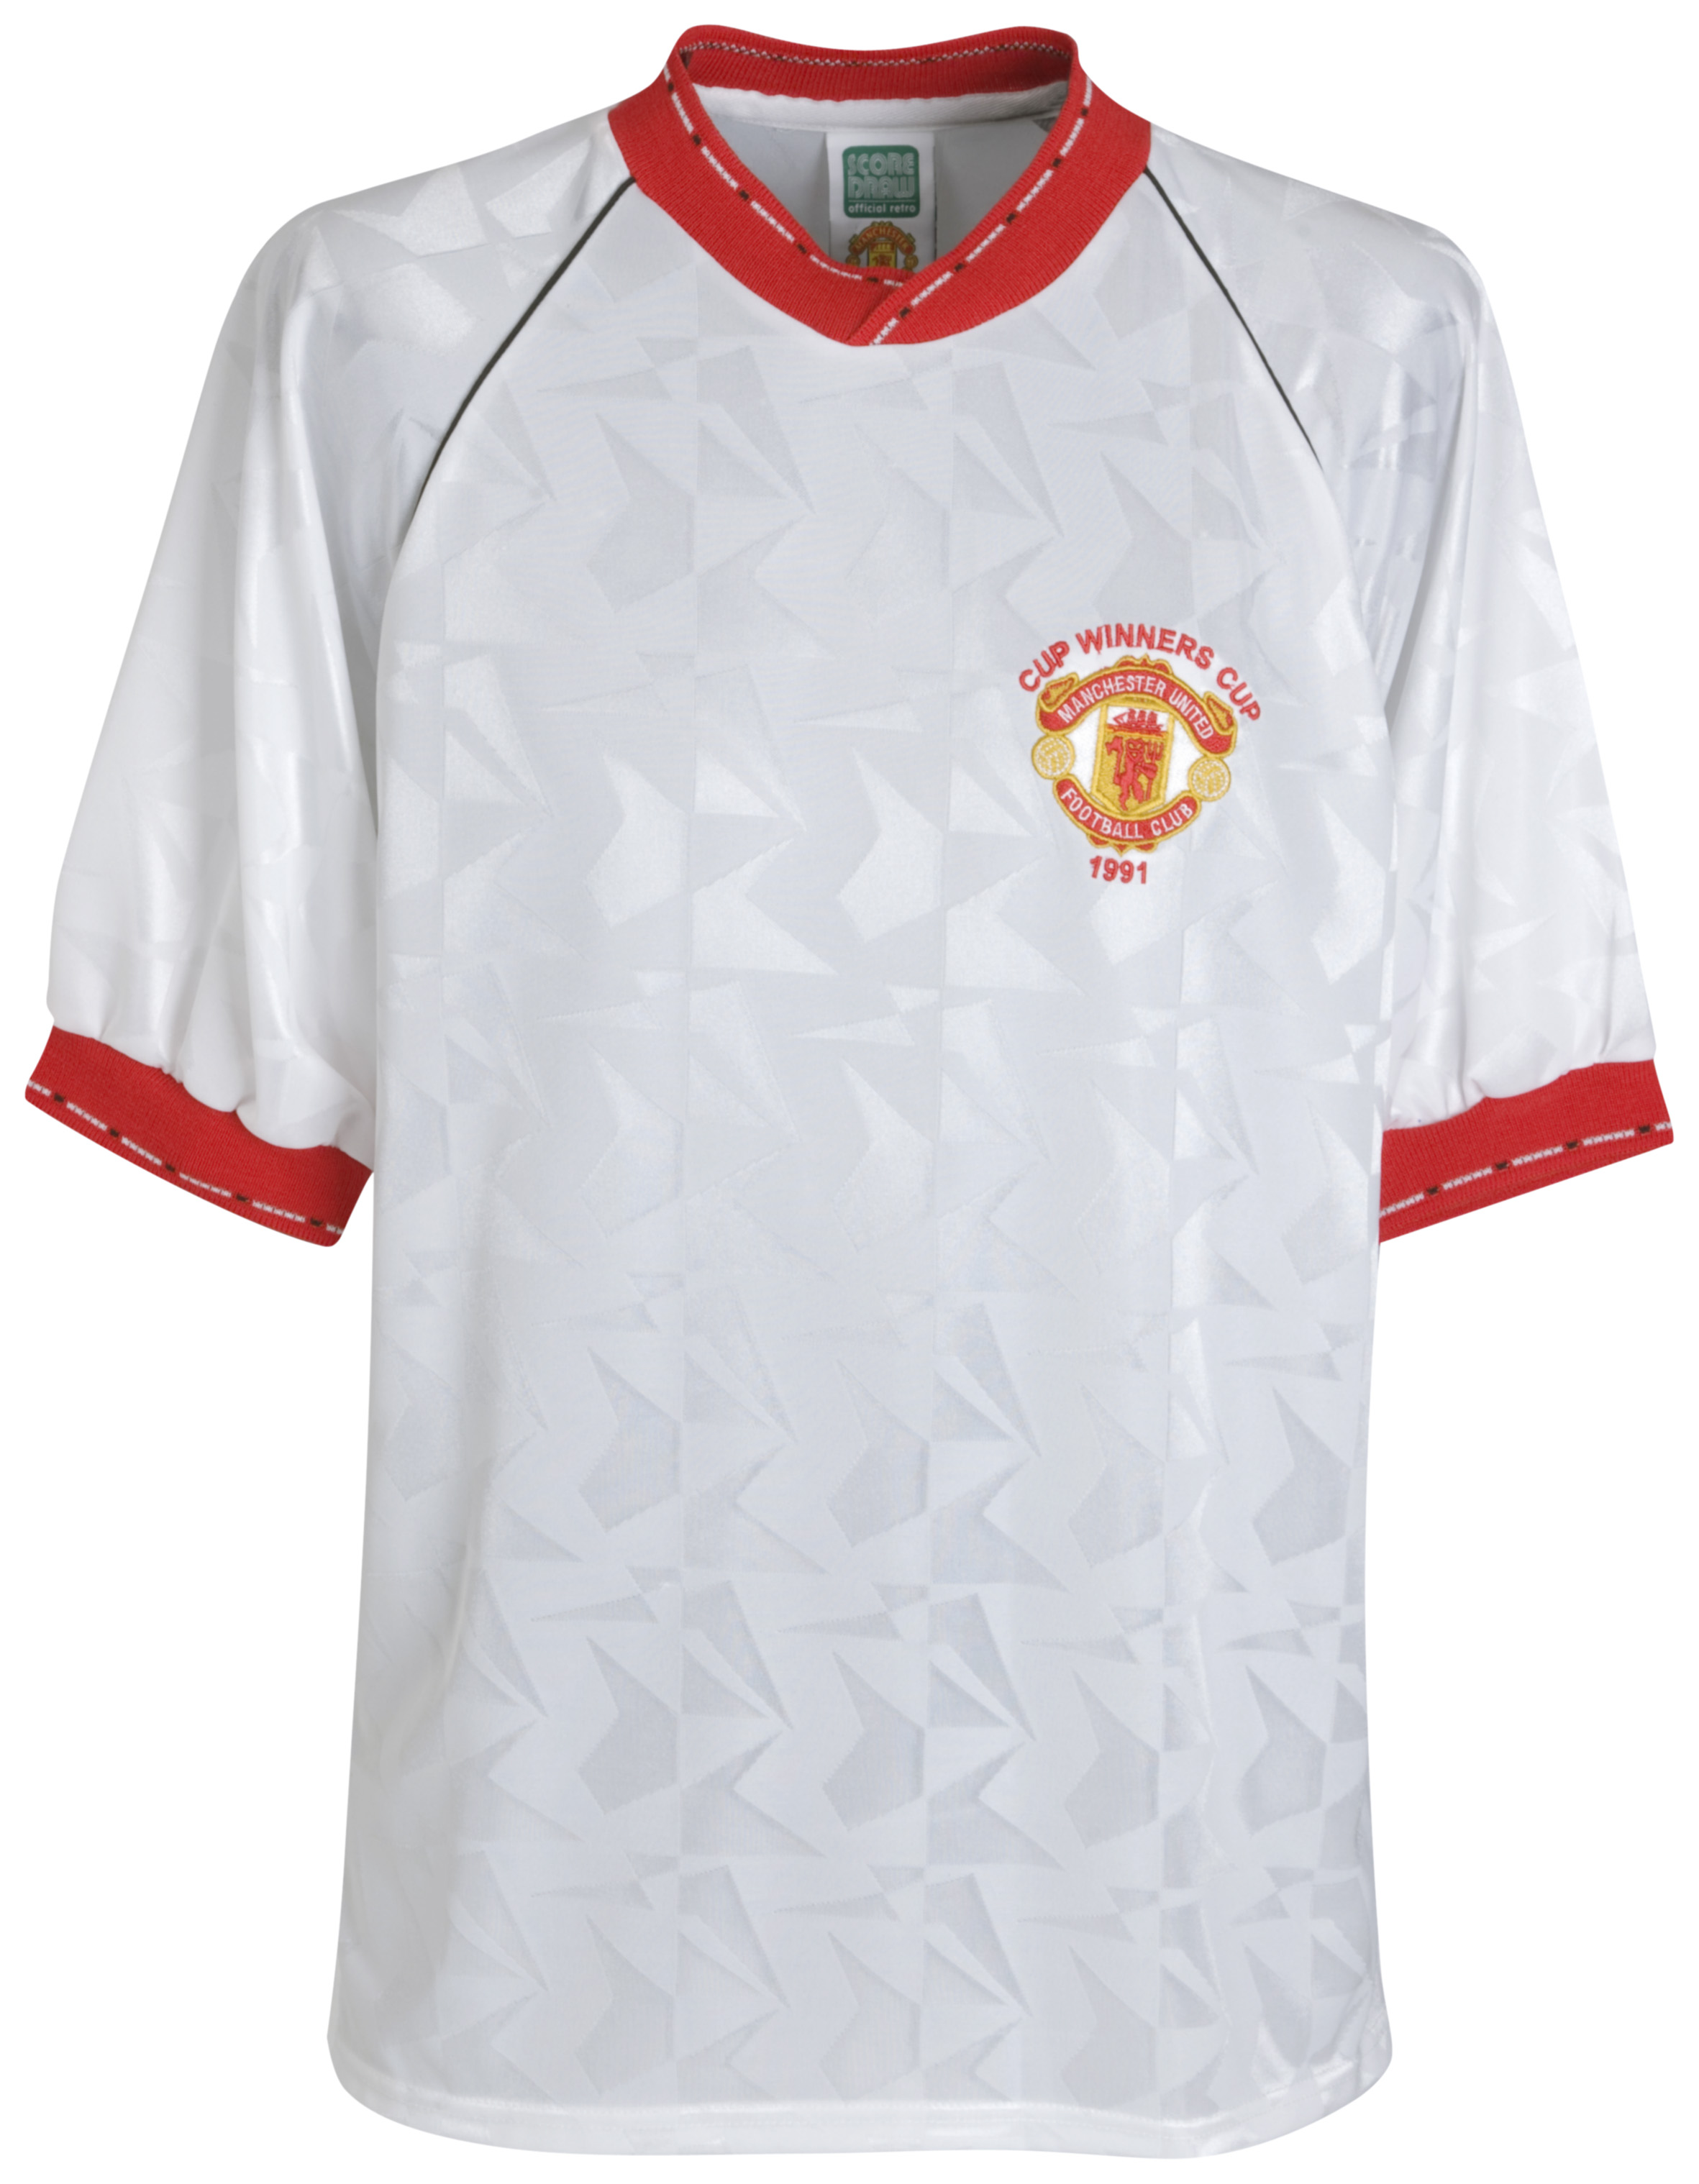 Manchester United 1991 ECWC Final Retro Shirt - No. 10